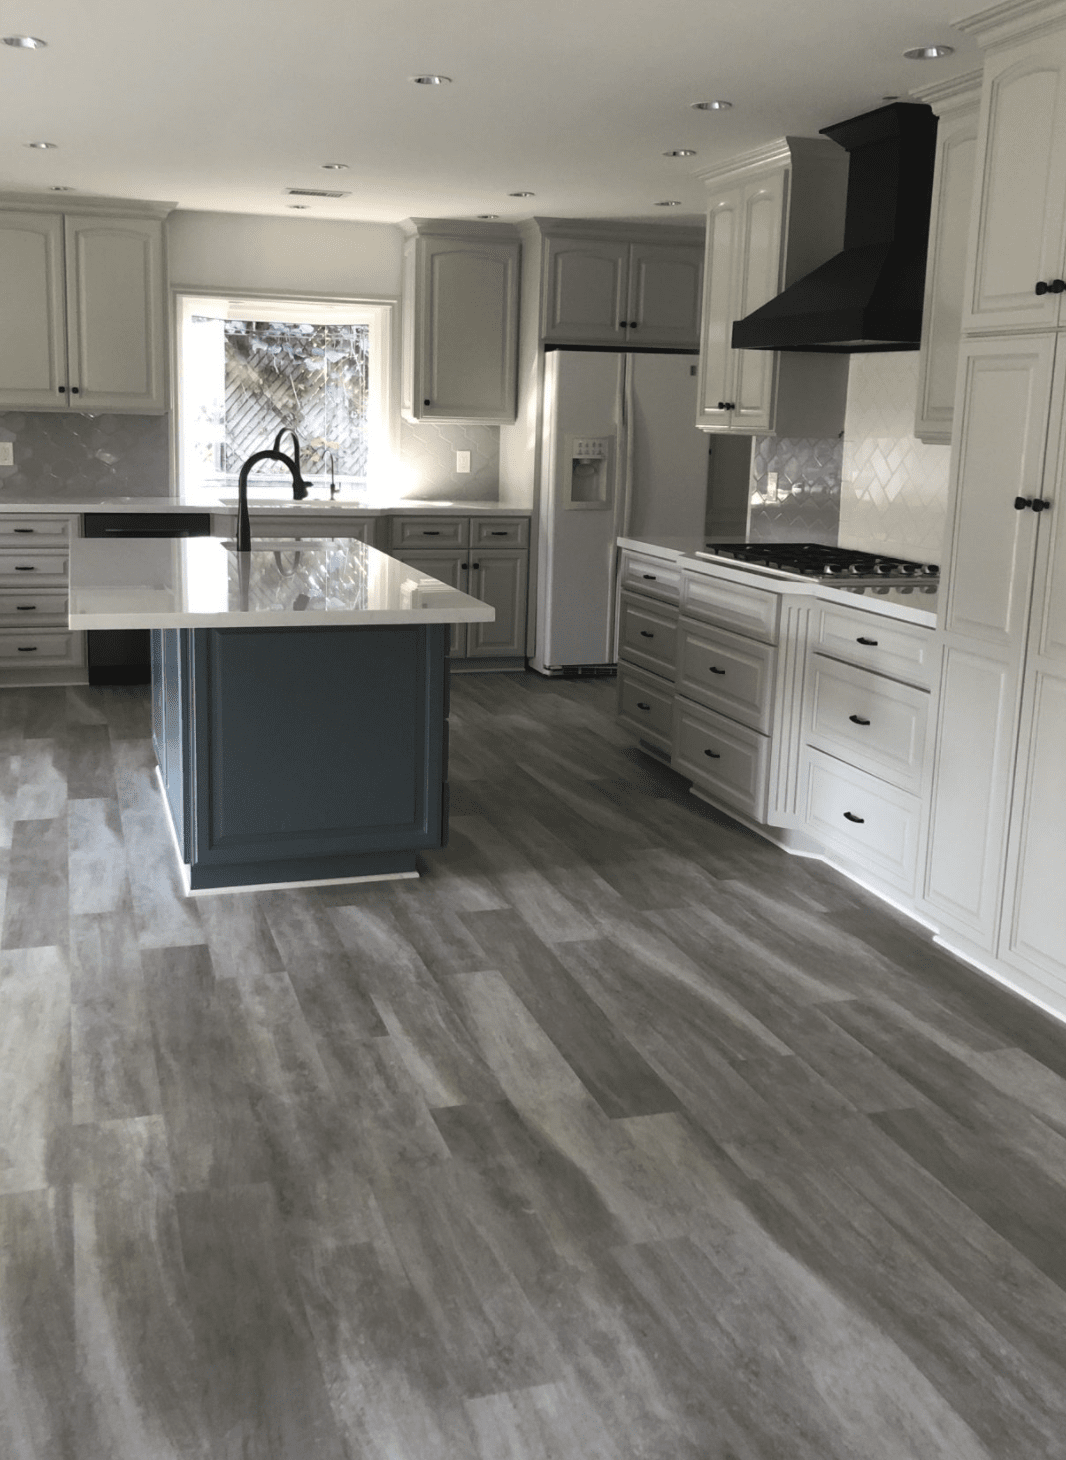 Waterproof kitchen flooring in Placentia, CA from TS Home Design Center / Rite Loom Flooring